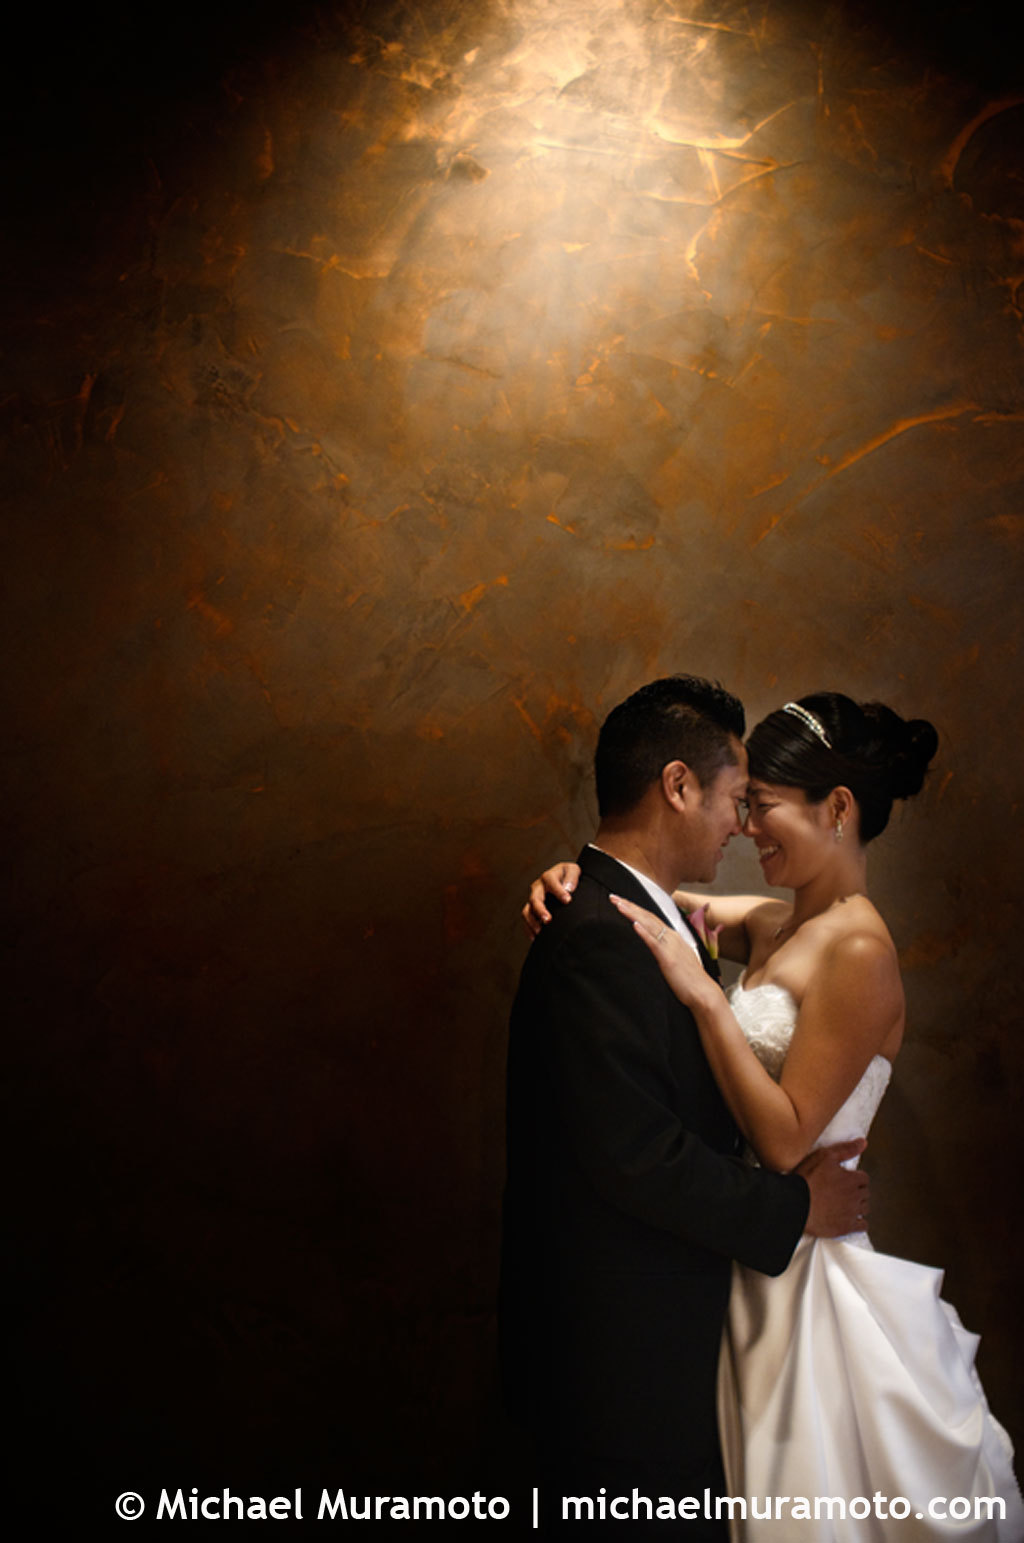 brown, Lighting, Bride, Groom, Portrait, Hotel, San francisco, Michael muramoto photography, Vitale, Bar americano